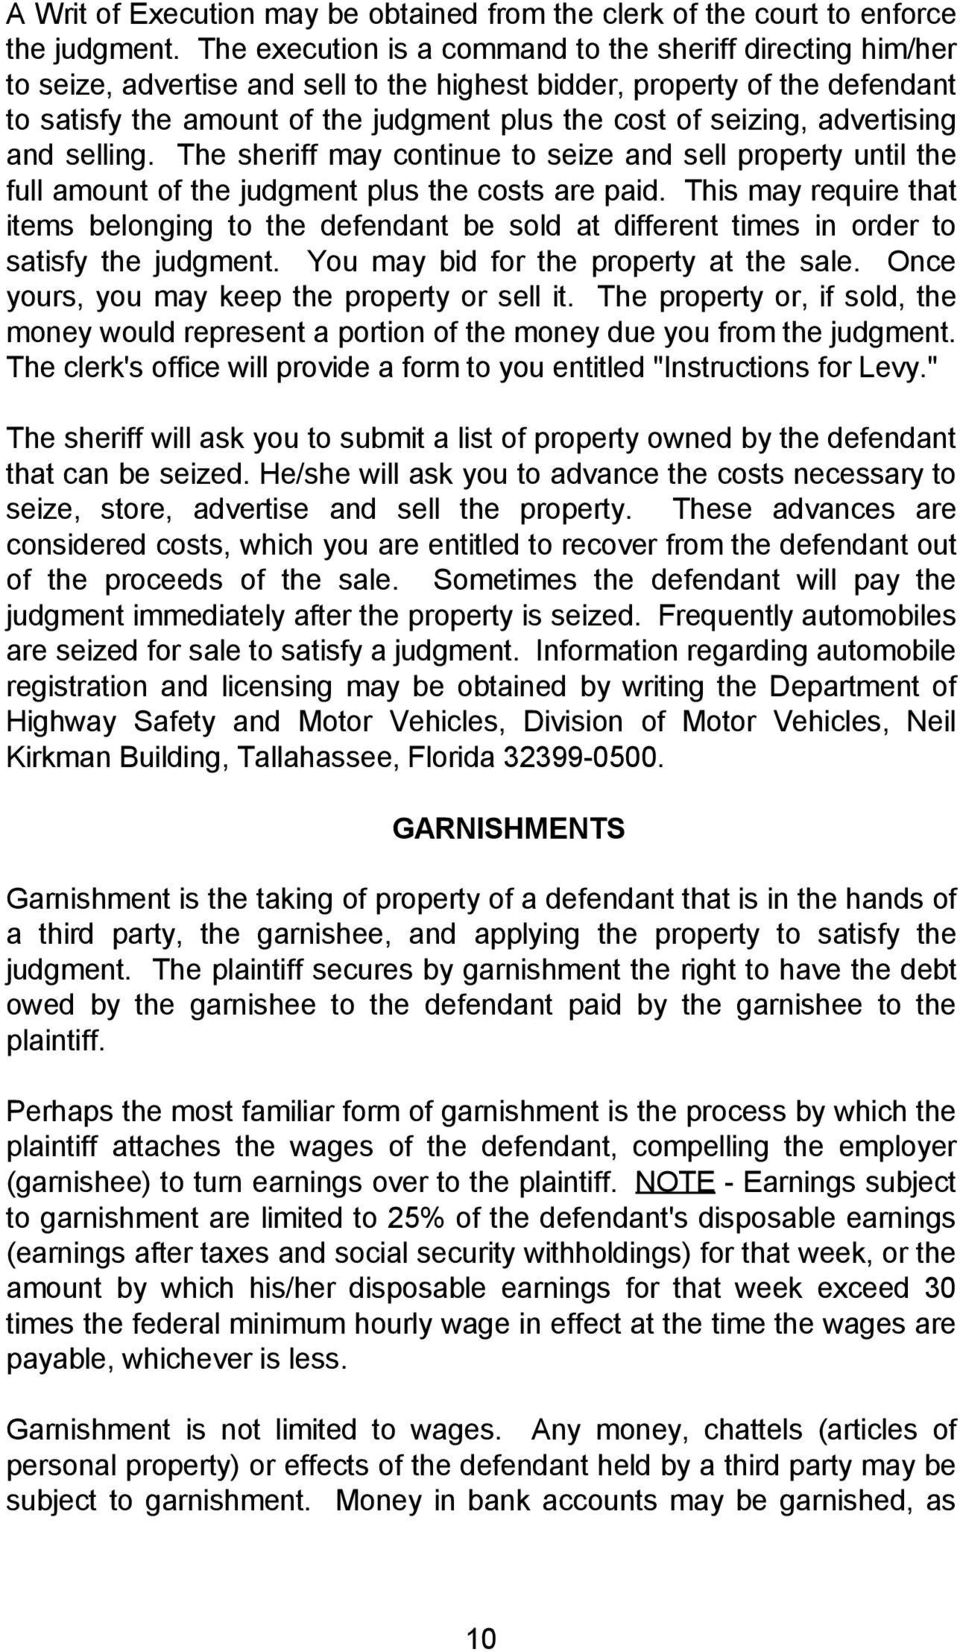 seizing, advertising and selling. The sheriff may continue to seize and sell property until the full amount of the judgment plus the costs are paid.